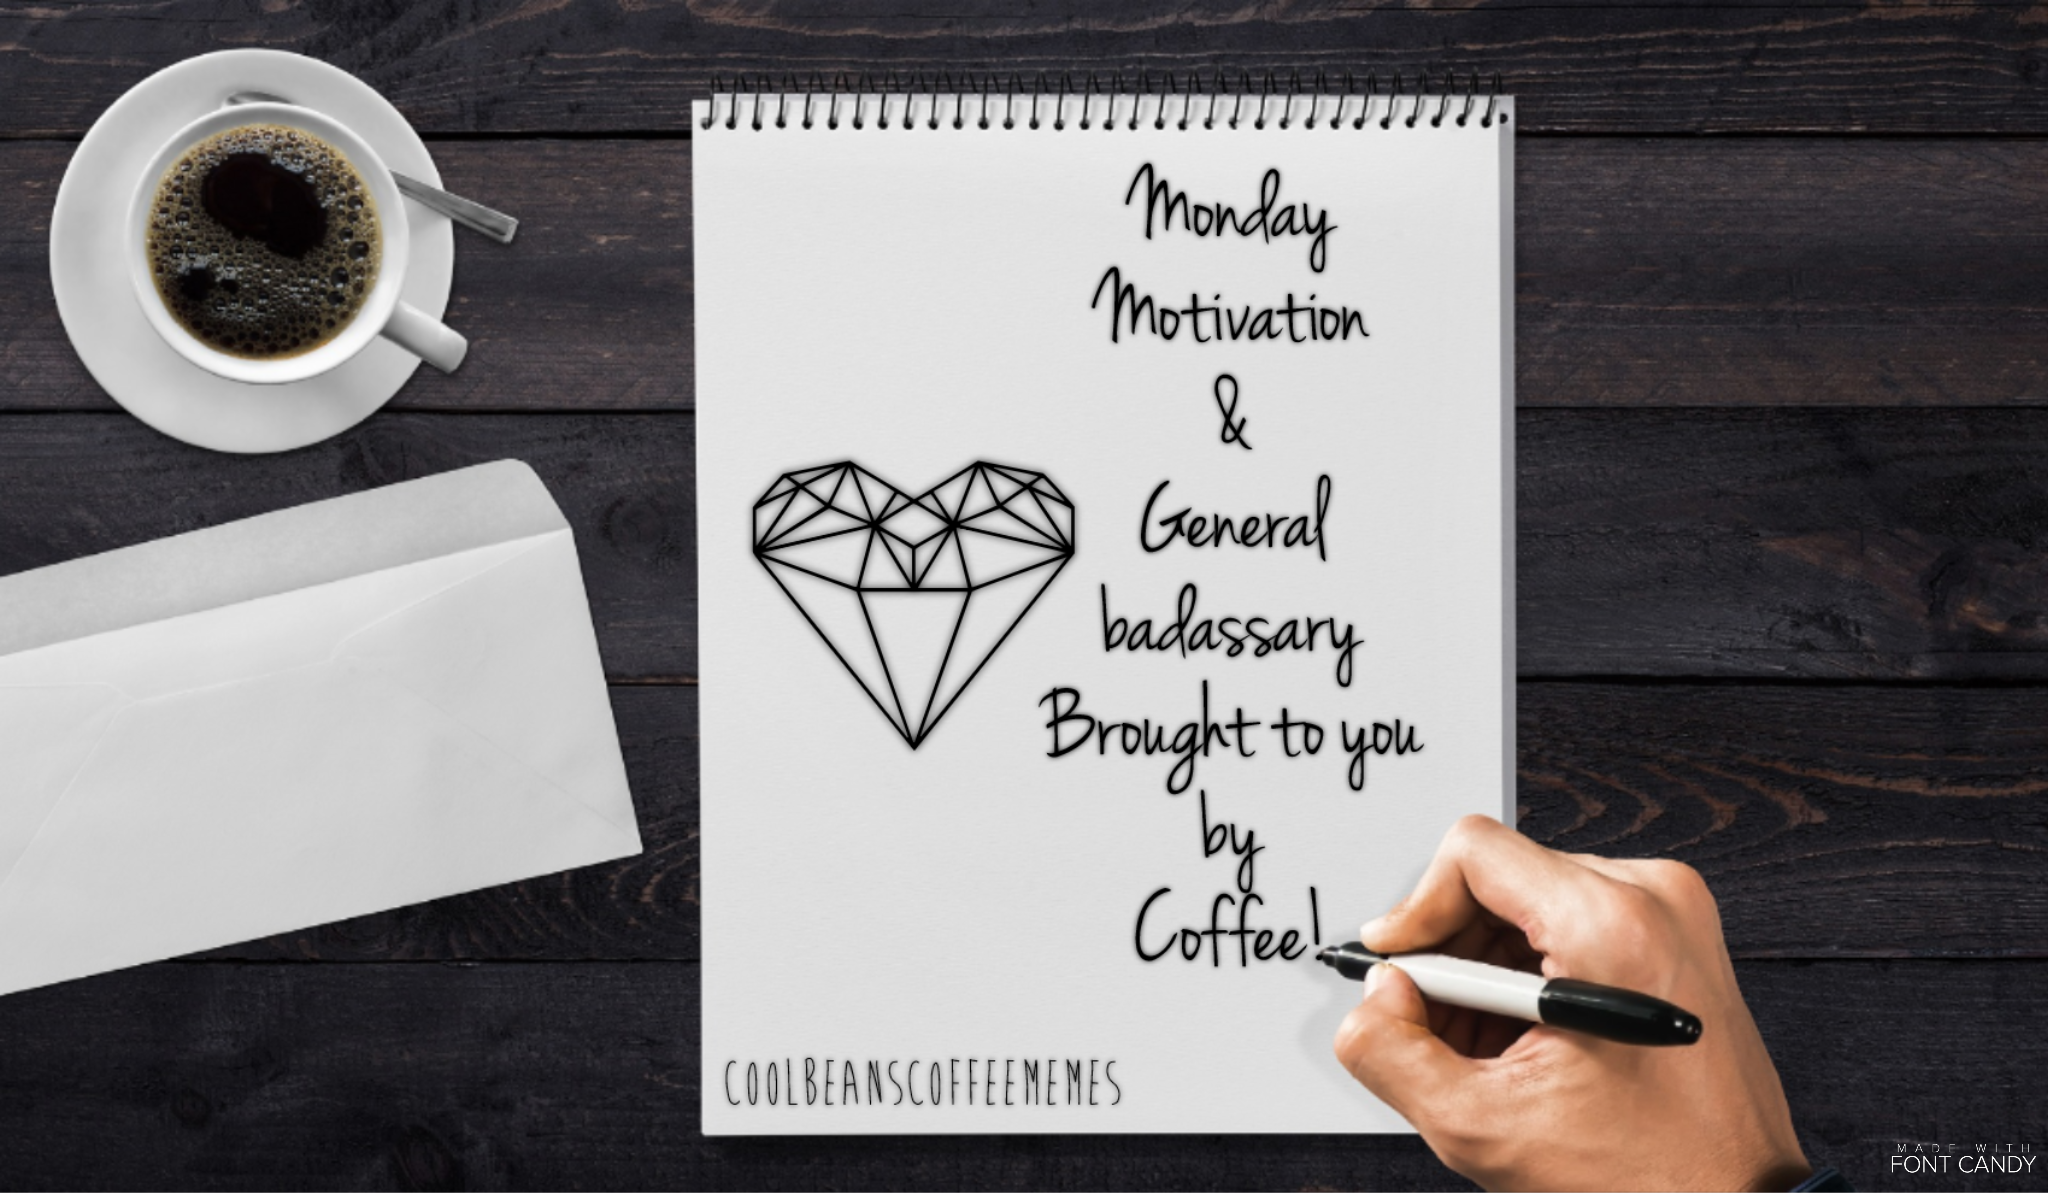 Monday motivation and general badassary! You got this! #coffee ... #coffeeBean